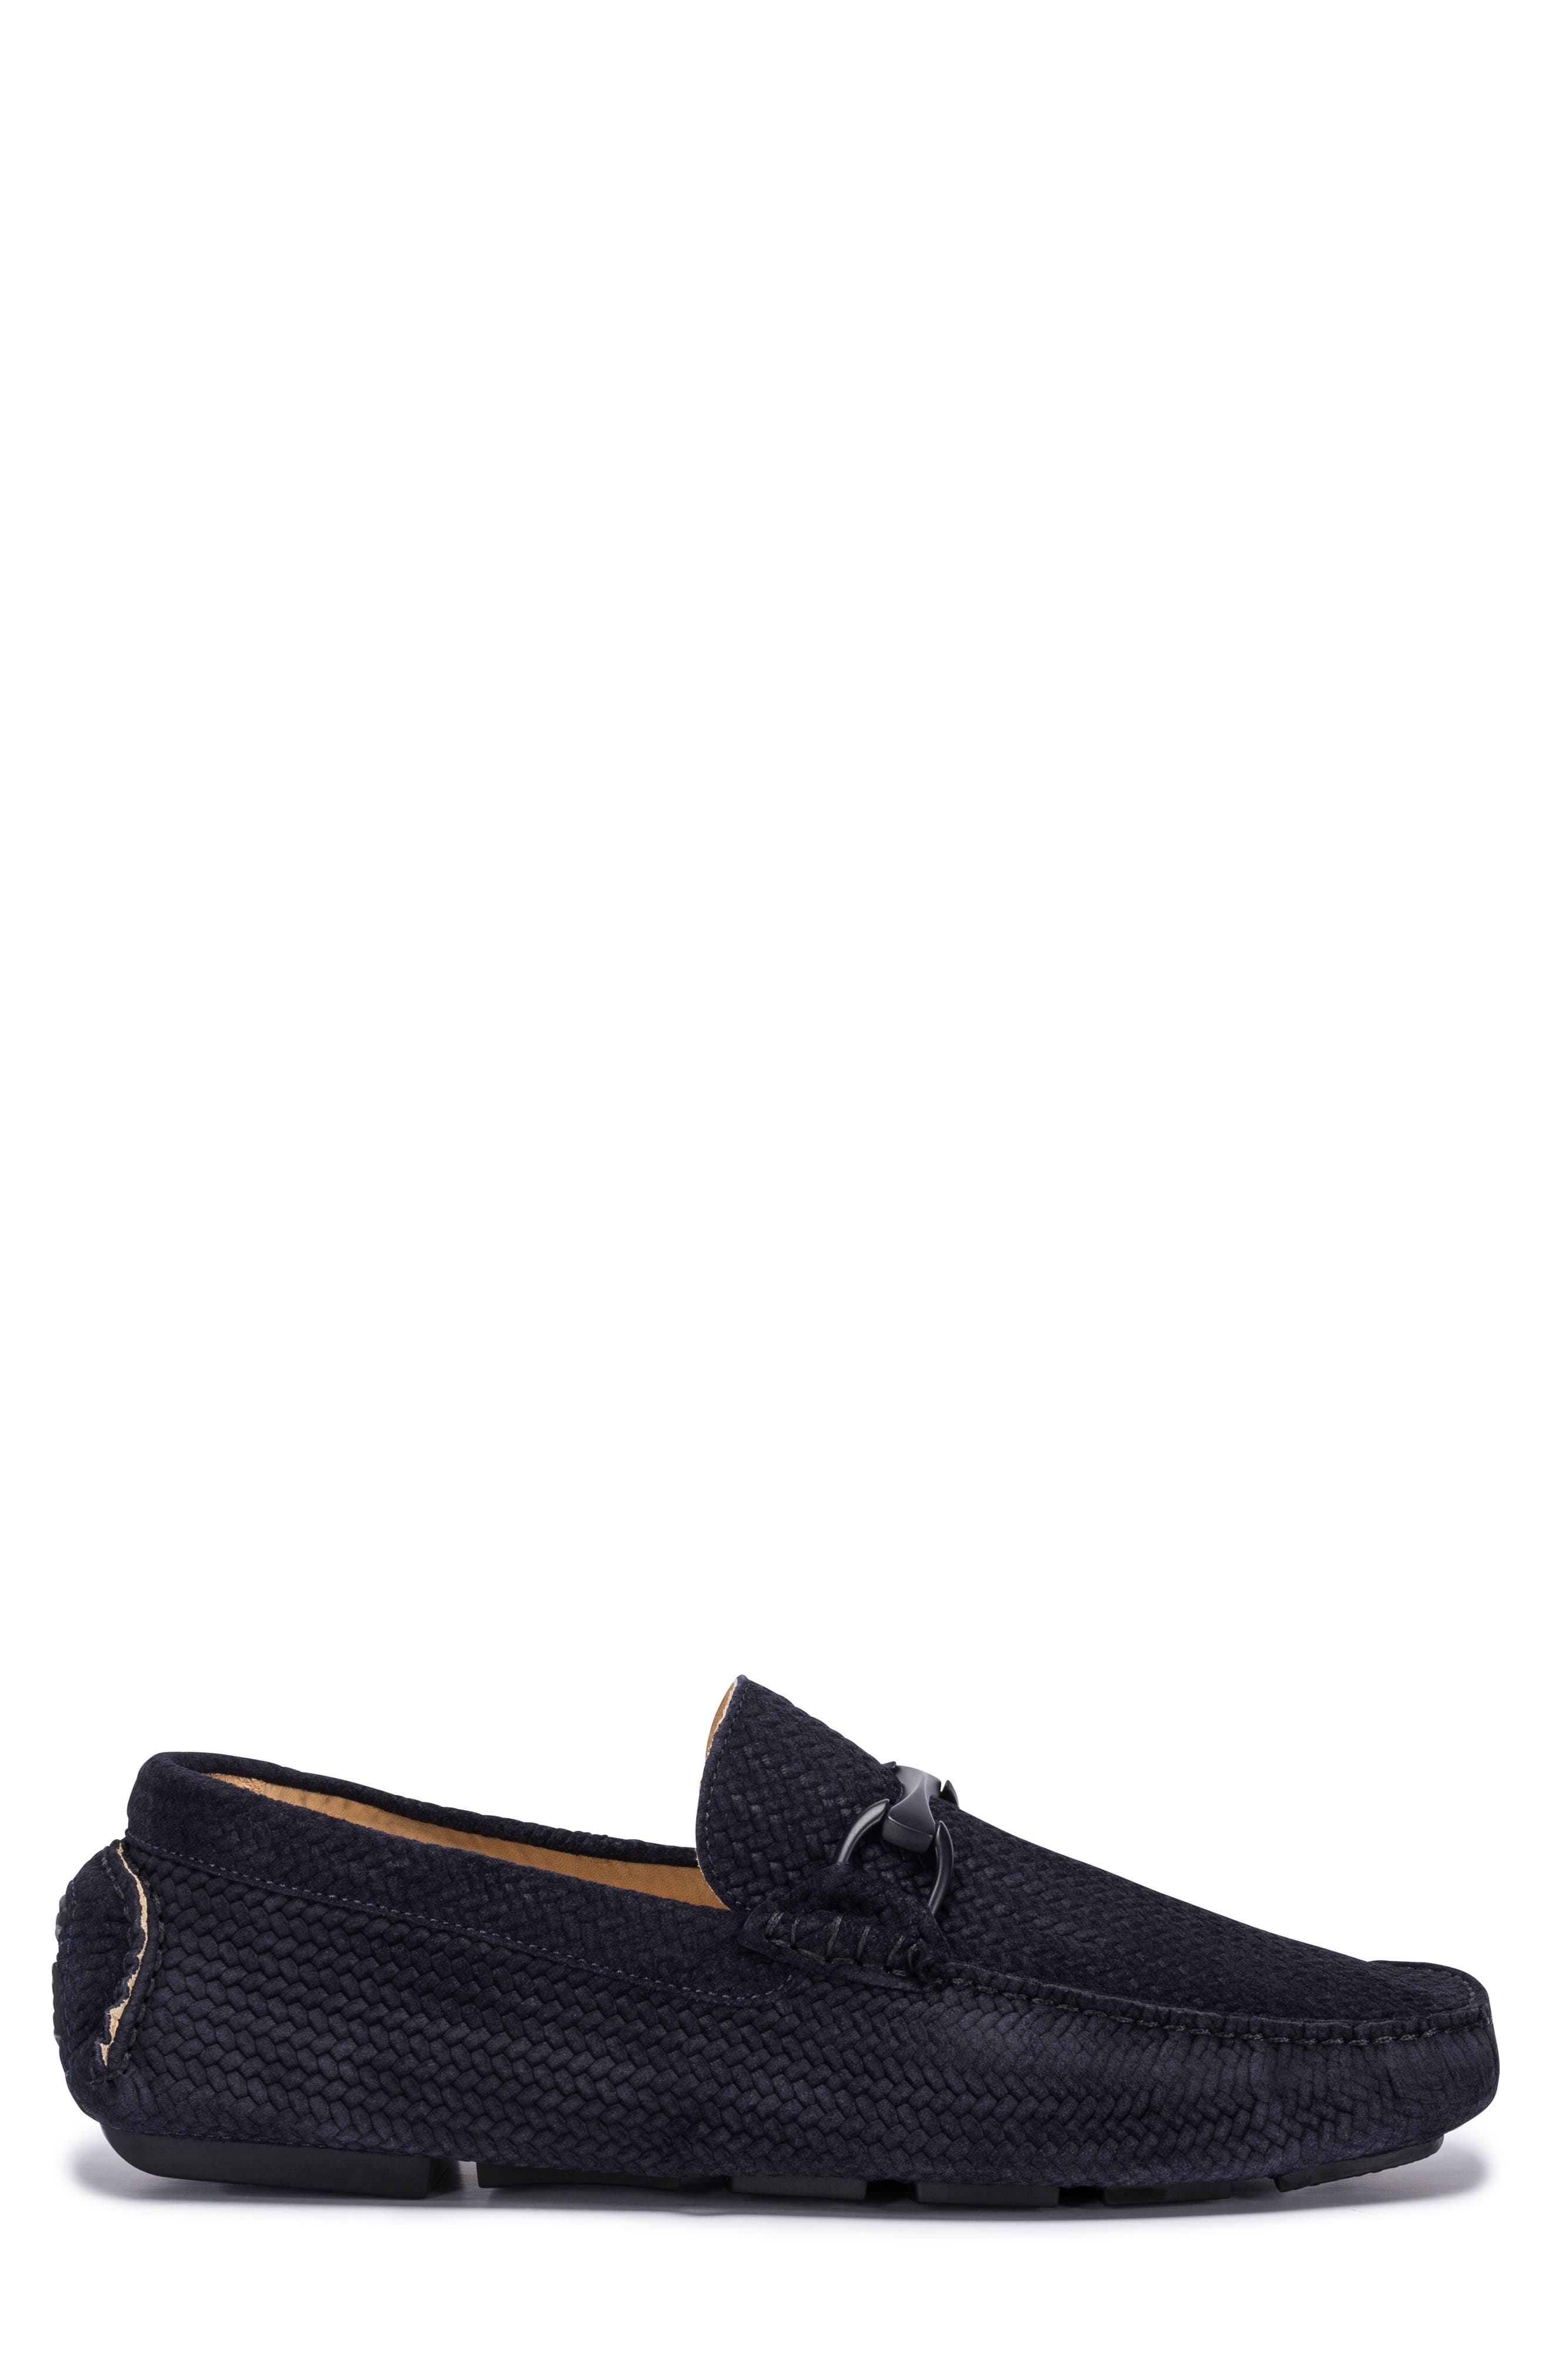 Amalfi Woven Bit Driving Loafer,                             Alternate thumbnail 3, color,                             Blue Suede